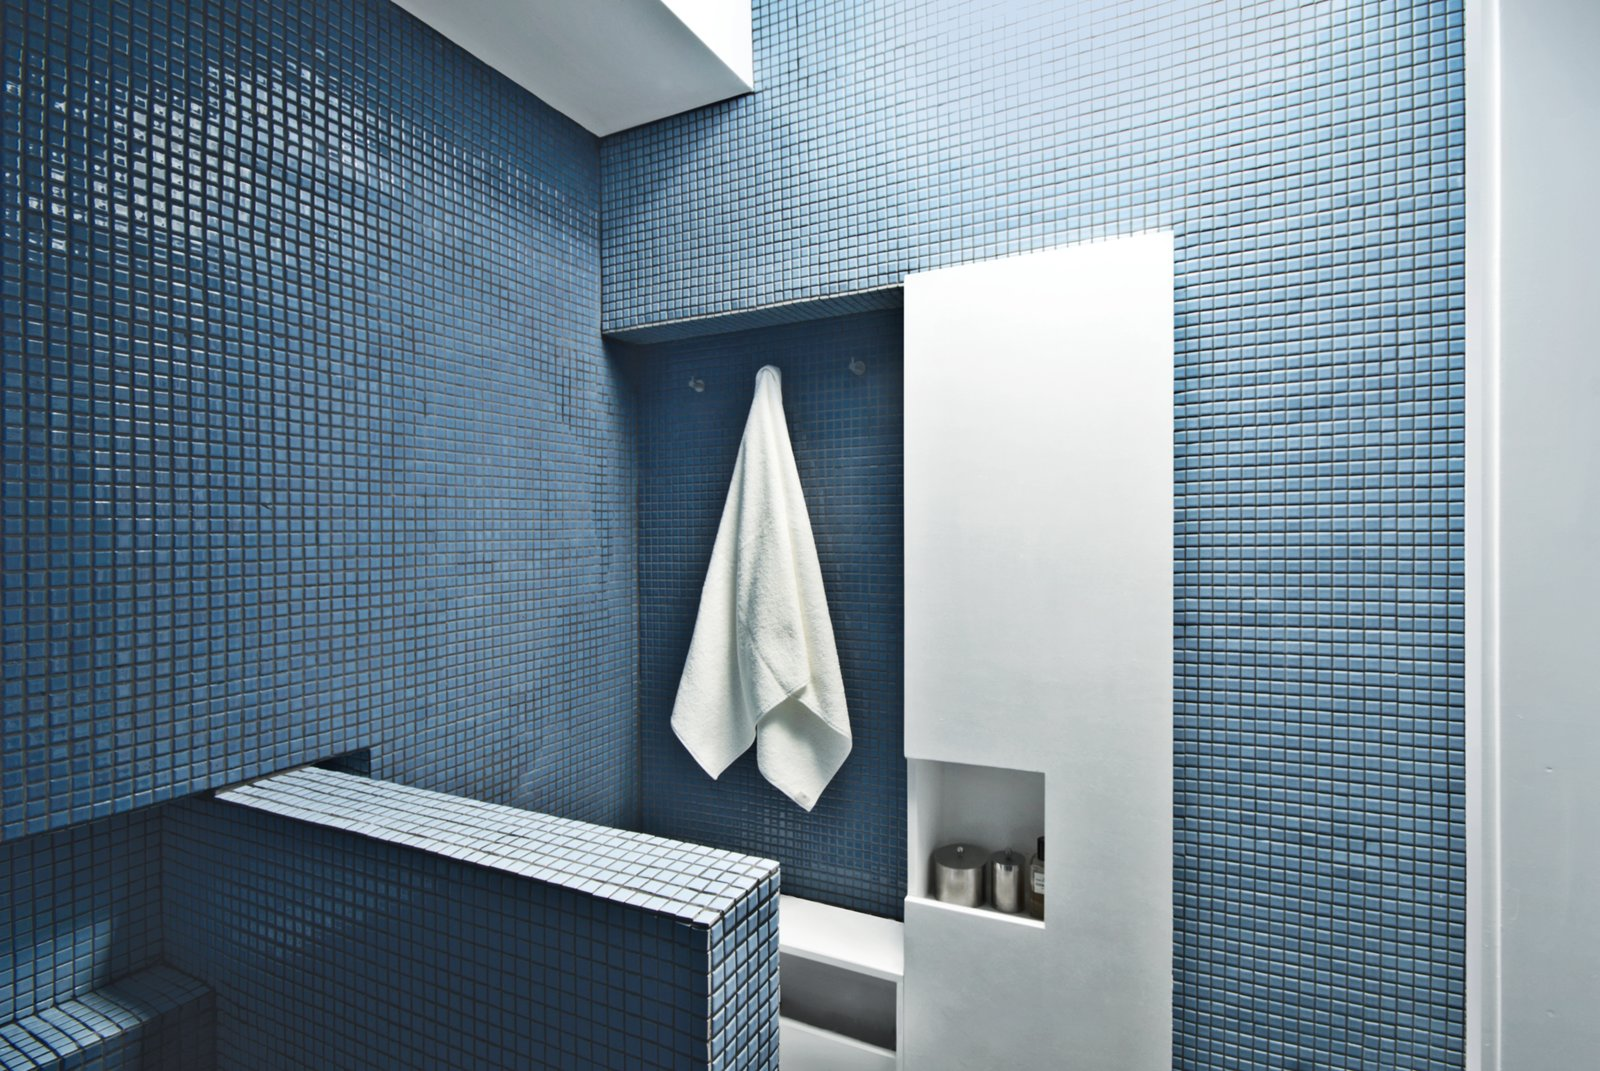 How to bathrooms for small spaces collection of 9 photos for Limited space bathroom ideas